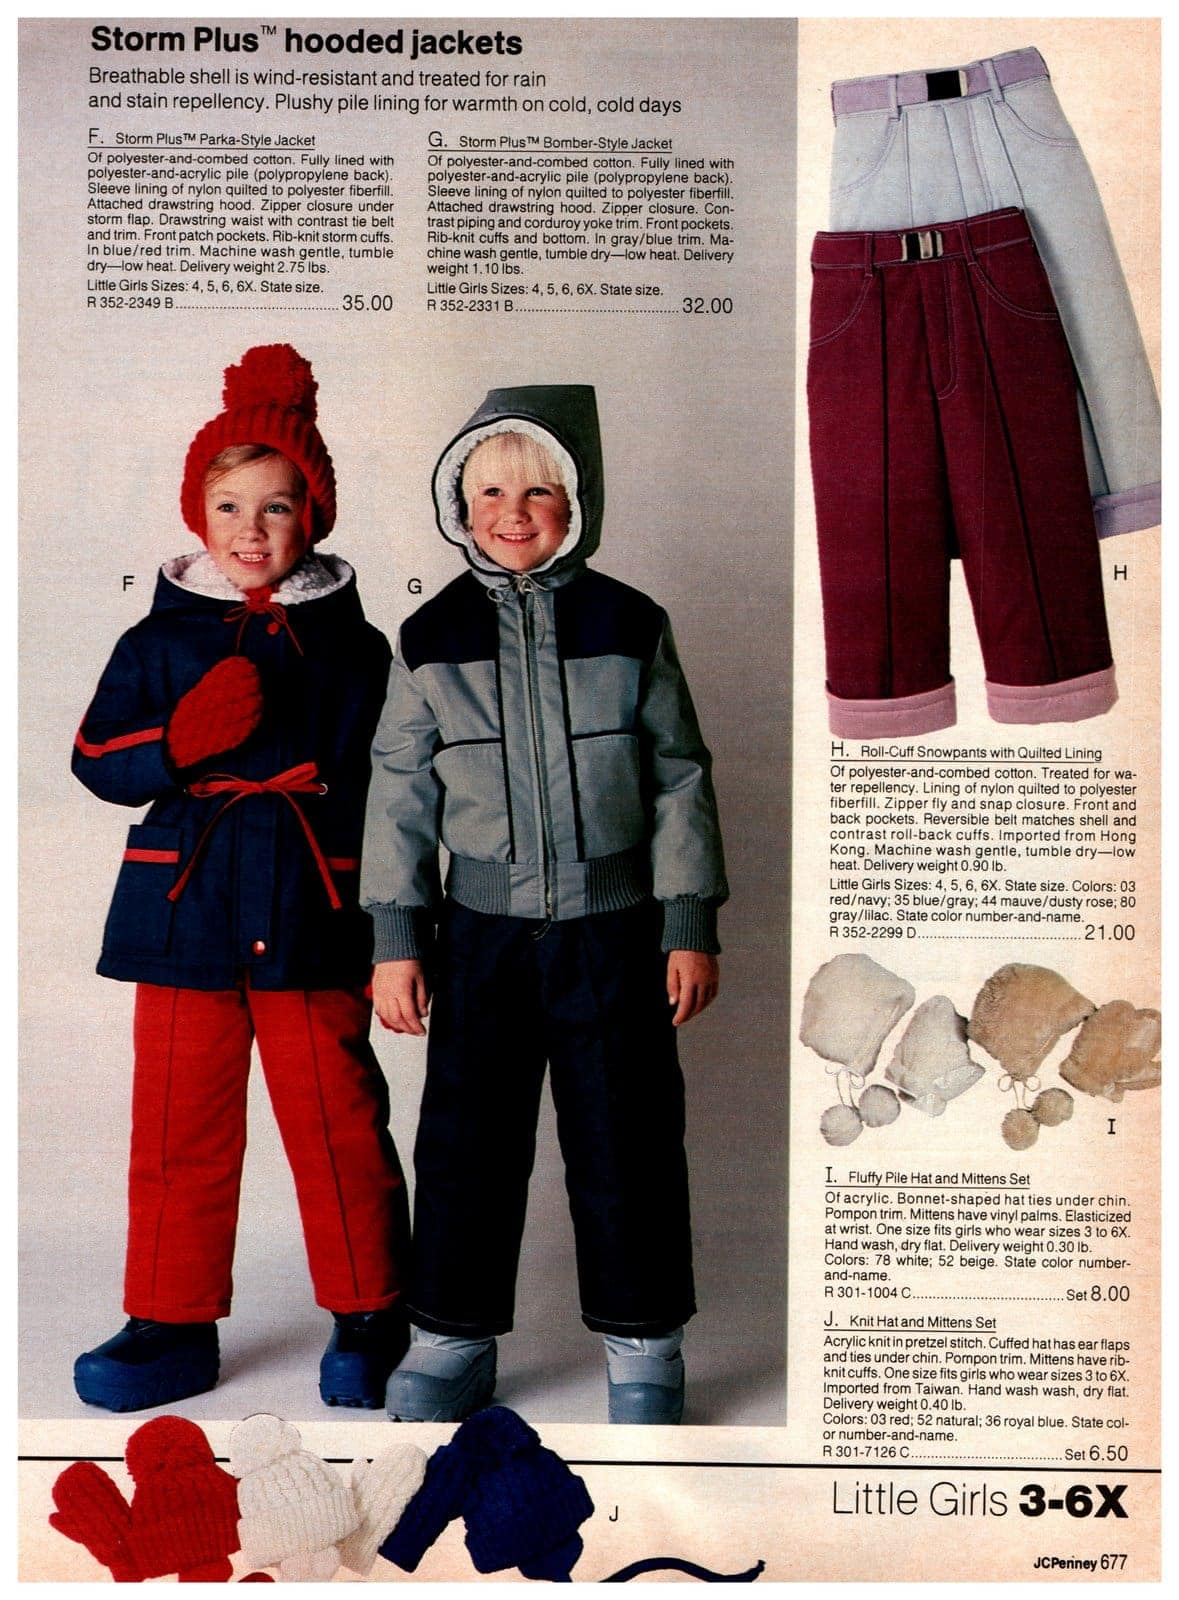 Storm Plus parka-style jackets and bomber-style jackets, plus snow pants, hats and mittens